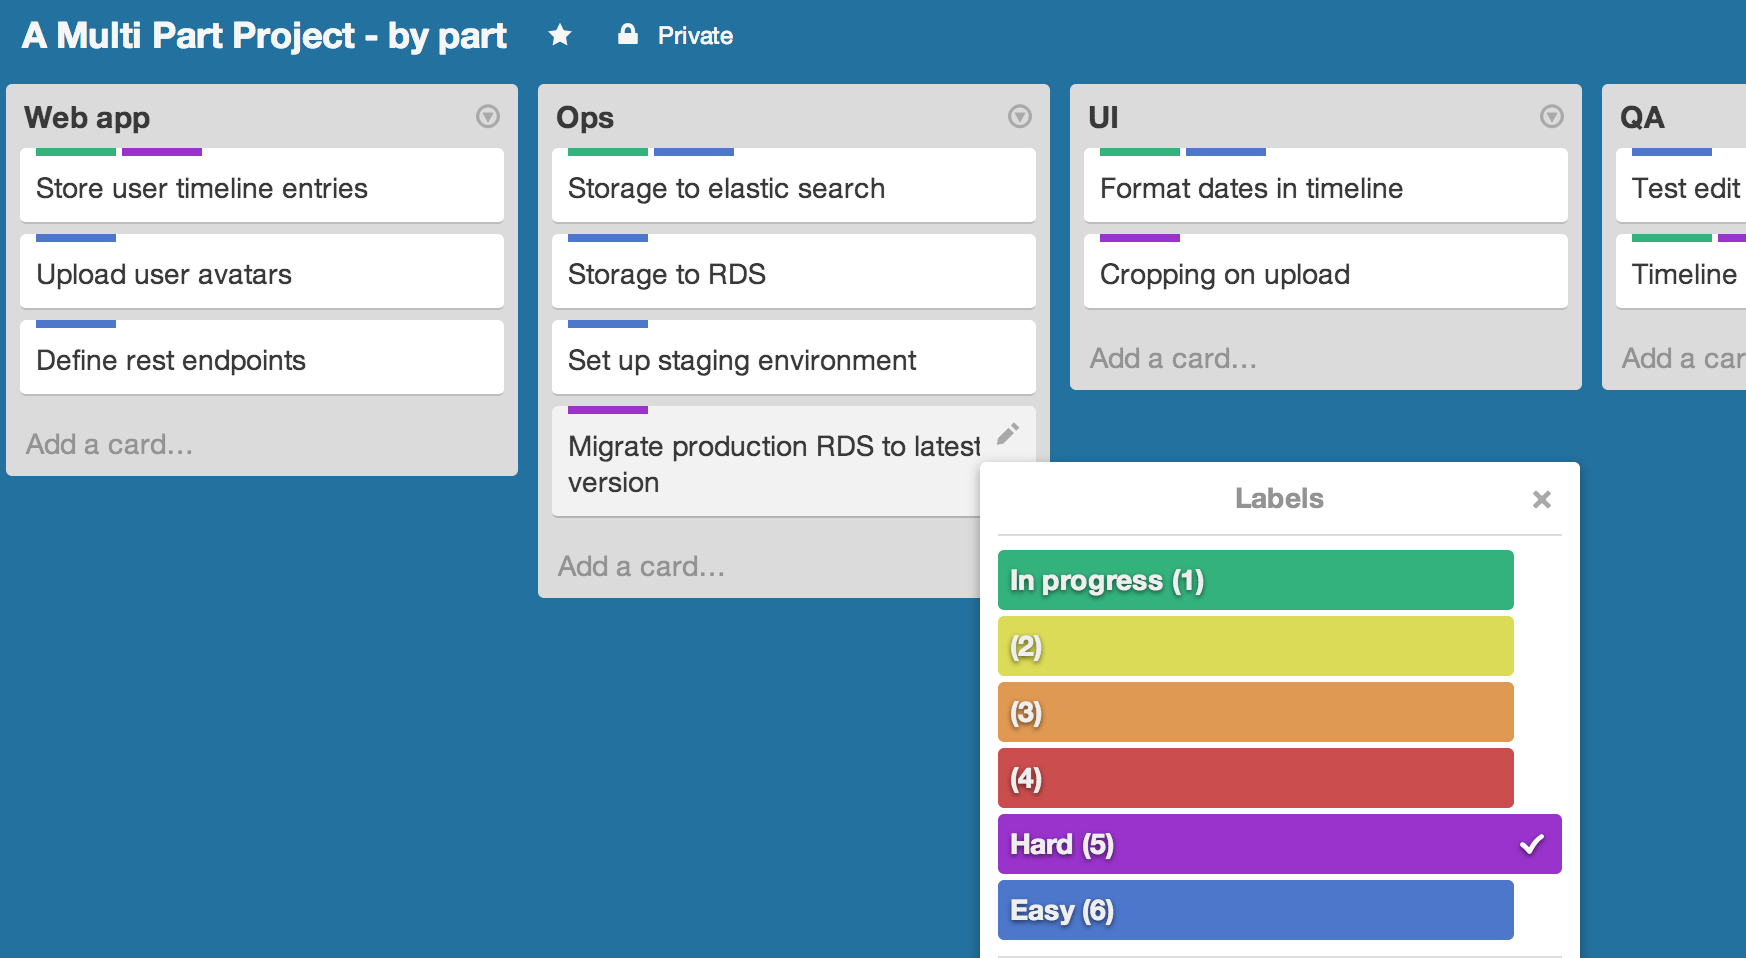 A multi-column kanban board with colors